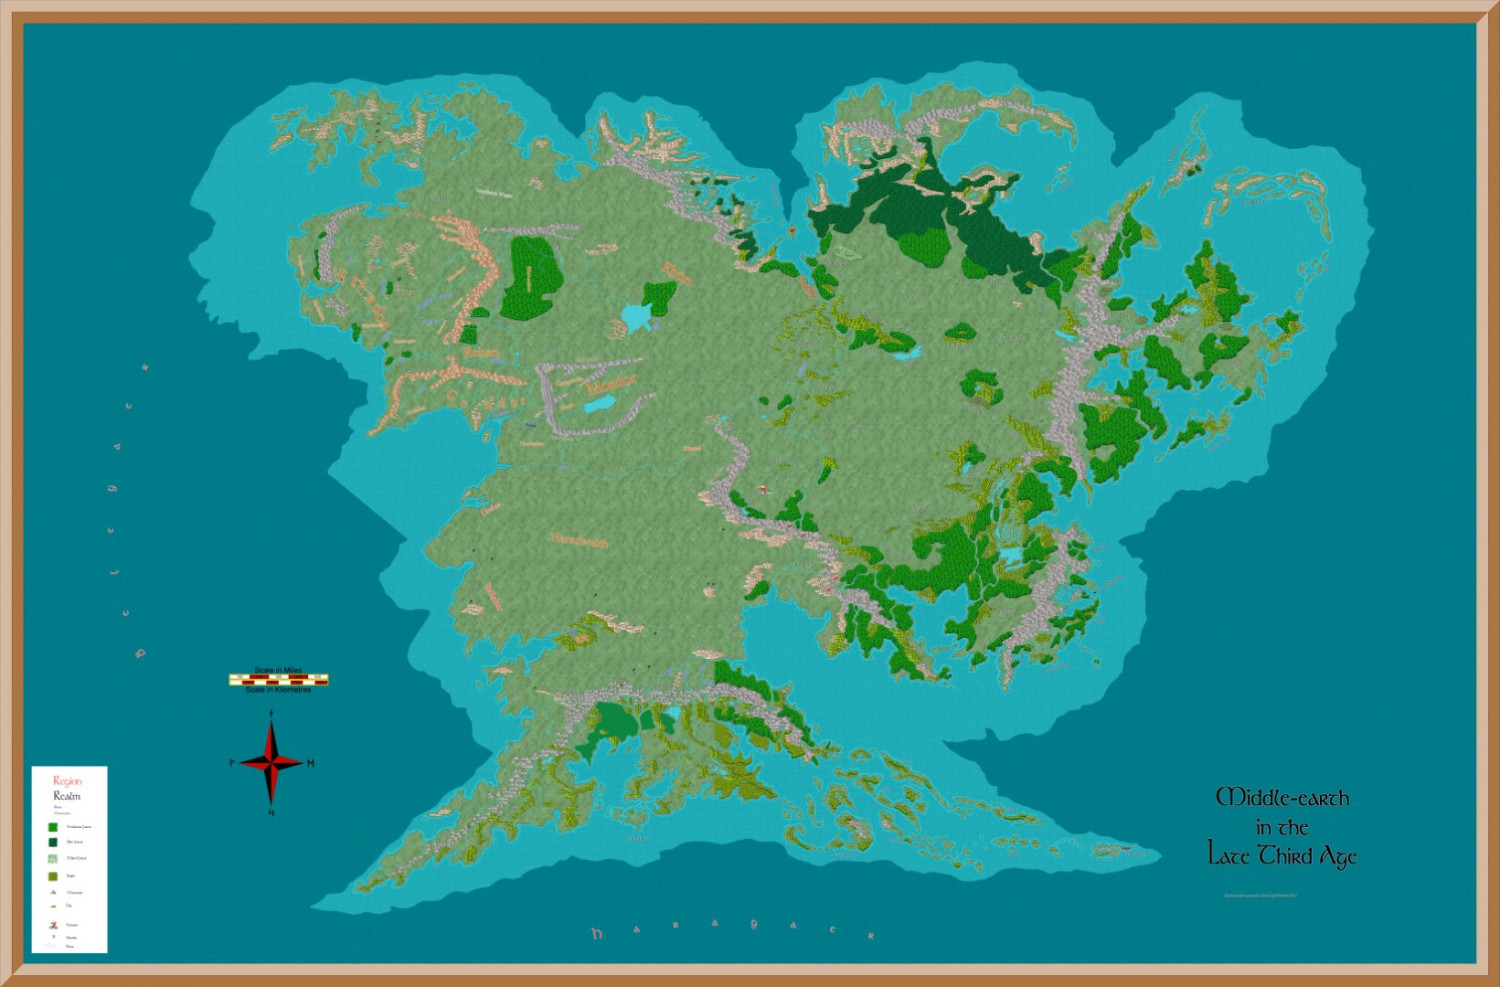 ICE Continent Map (Late Third Age) V1.00 (Large).JPG